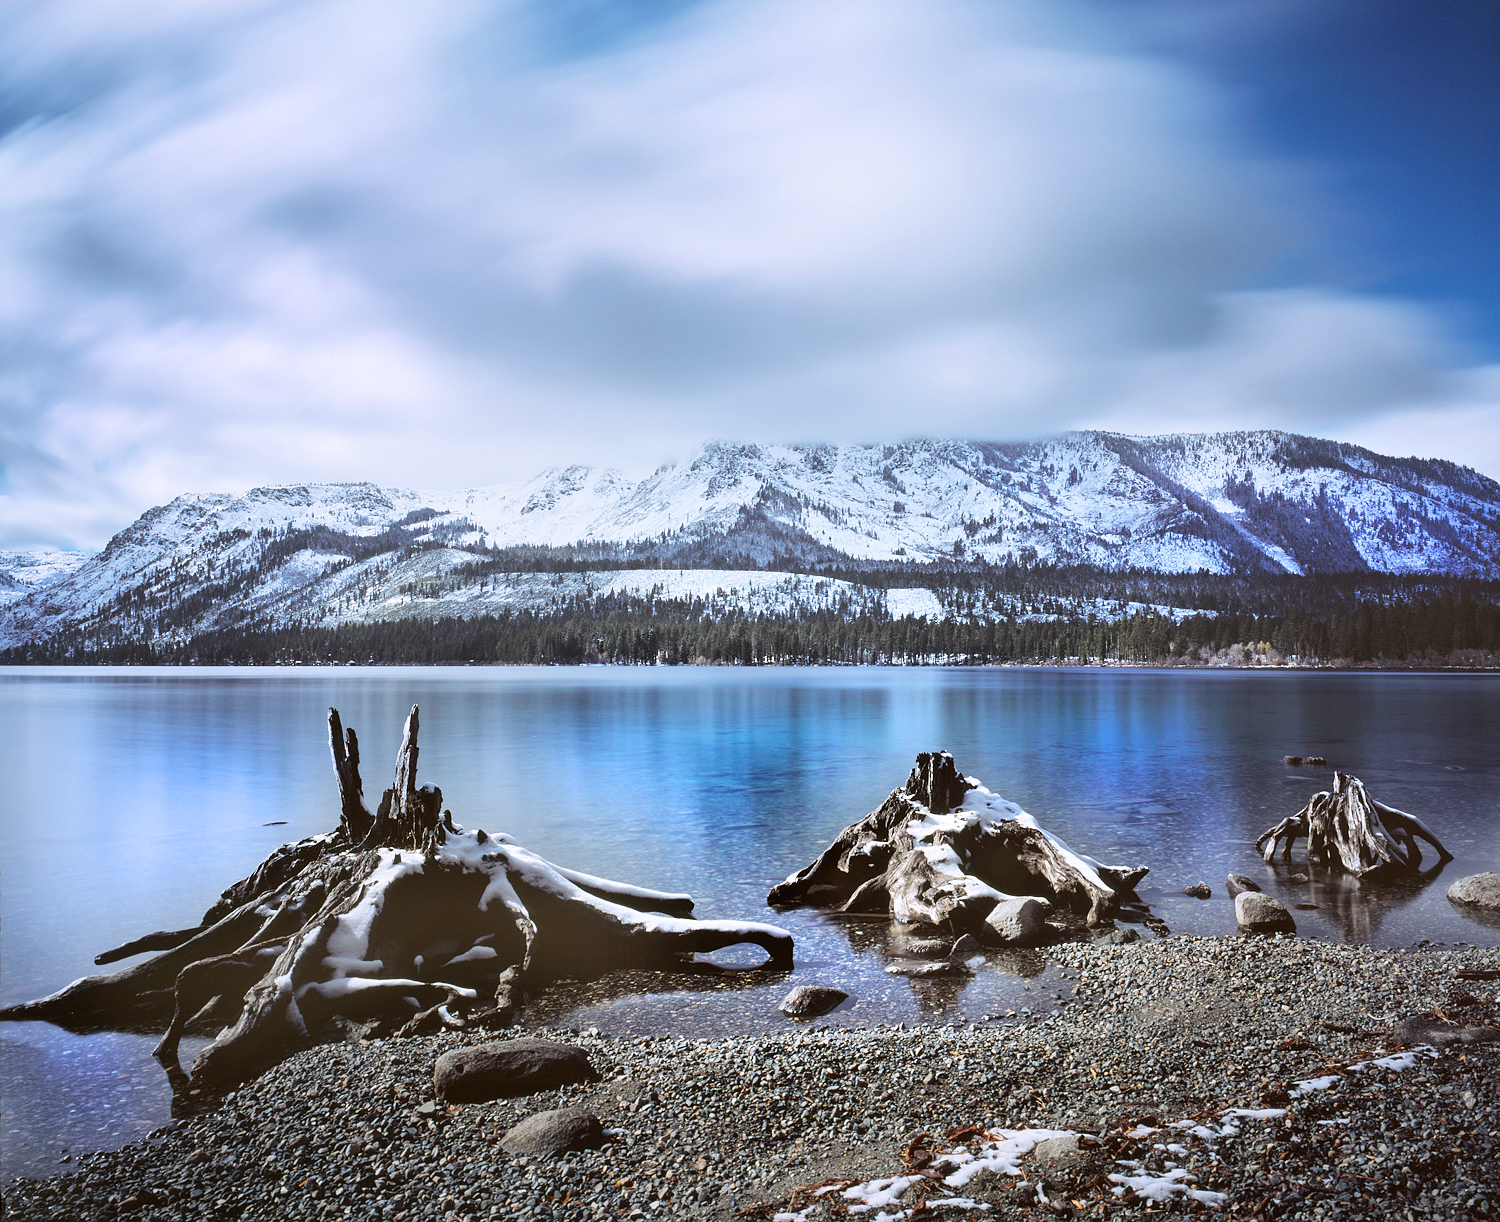 Mount Tallac and Clouds Over Fallen Leaf Lake, Lake Tahoe Basin